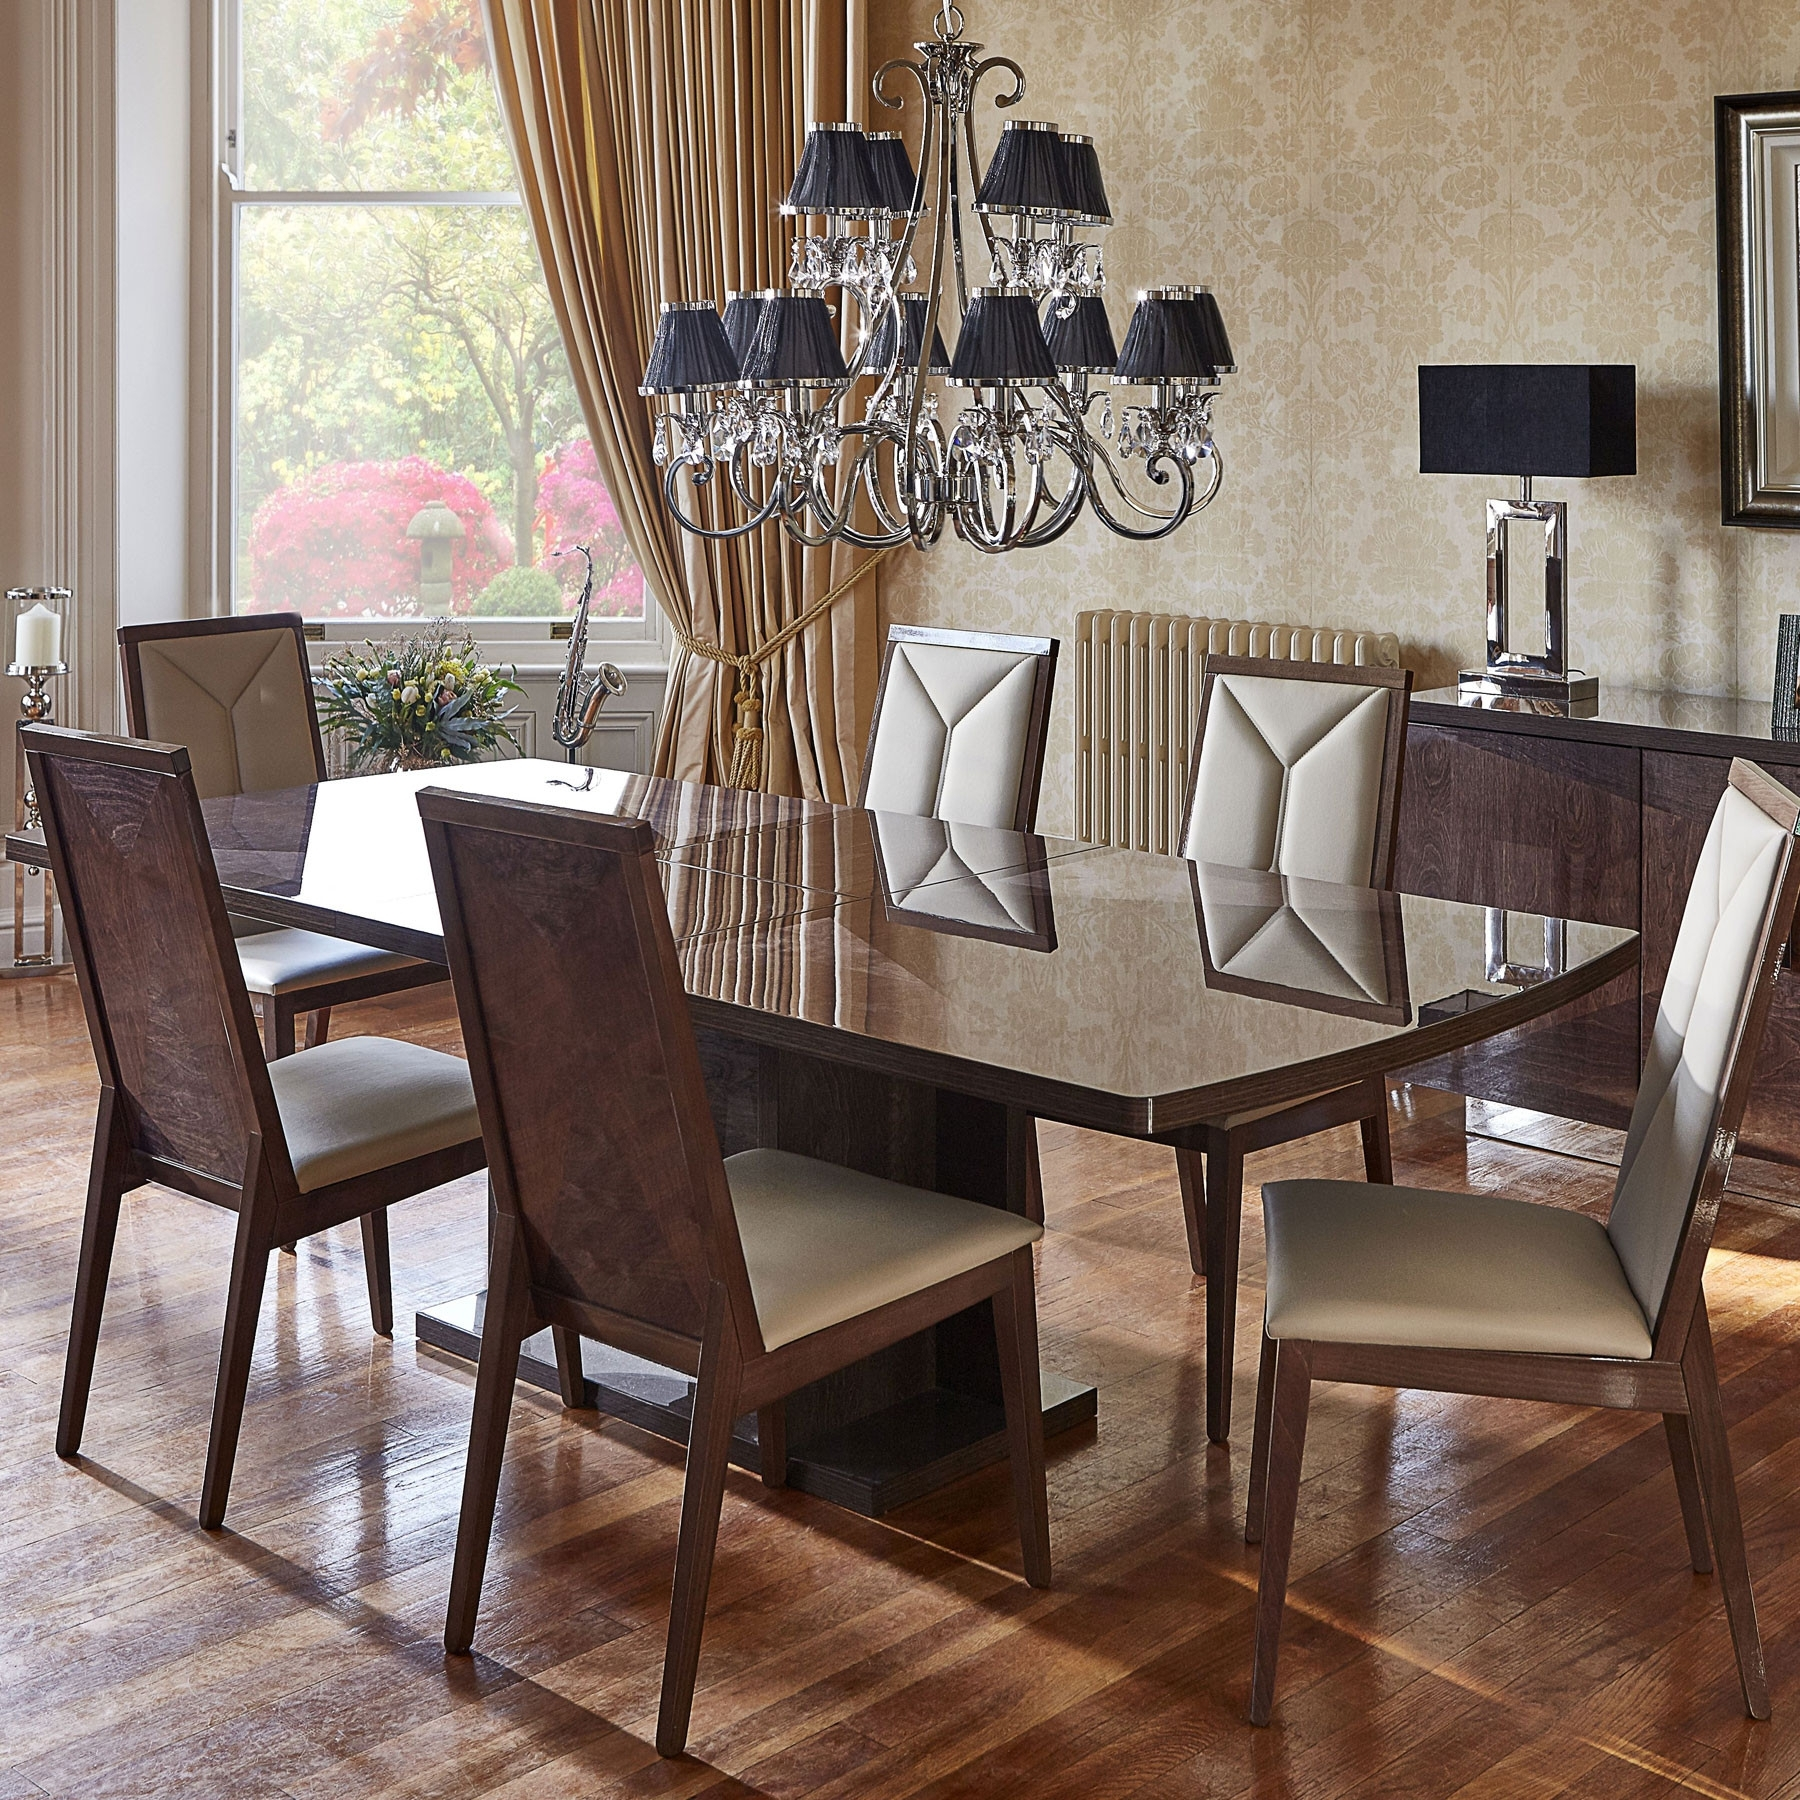 Preferred Extending Dining Tables And 6 Chairs Regarding Vogue High Gloss Extending Dining Table & 6 Chairs (Gallery 9 of 25)